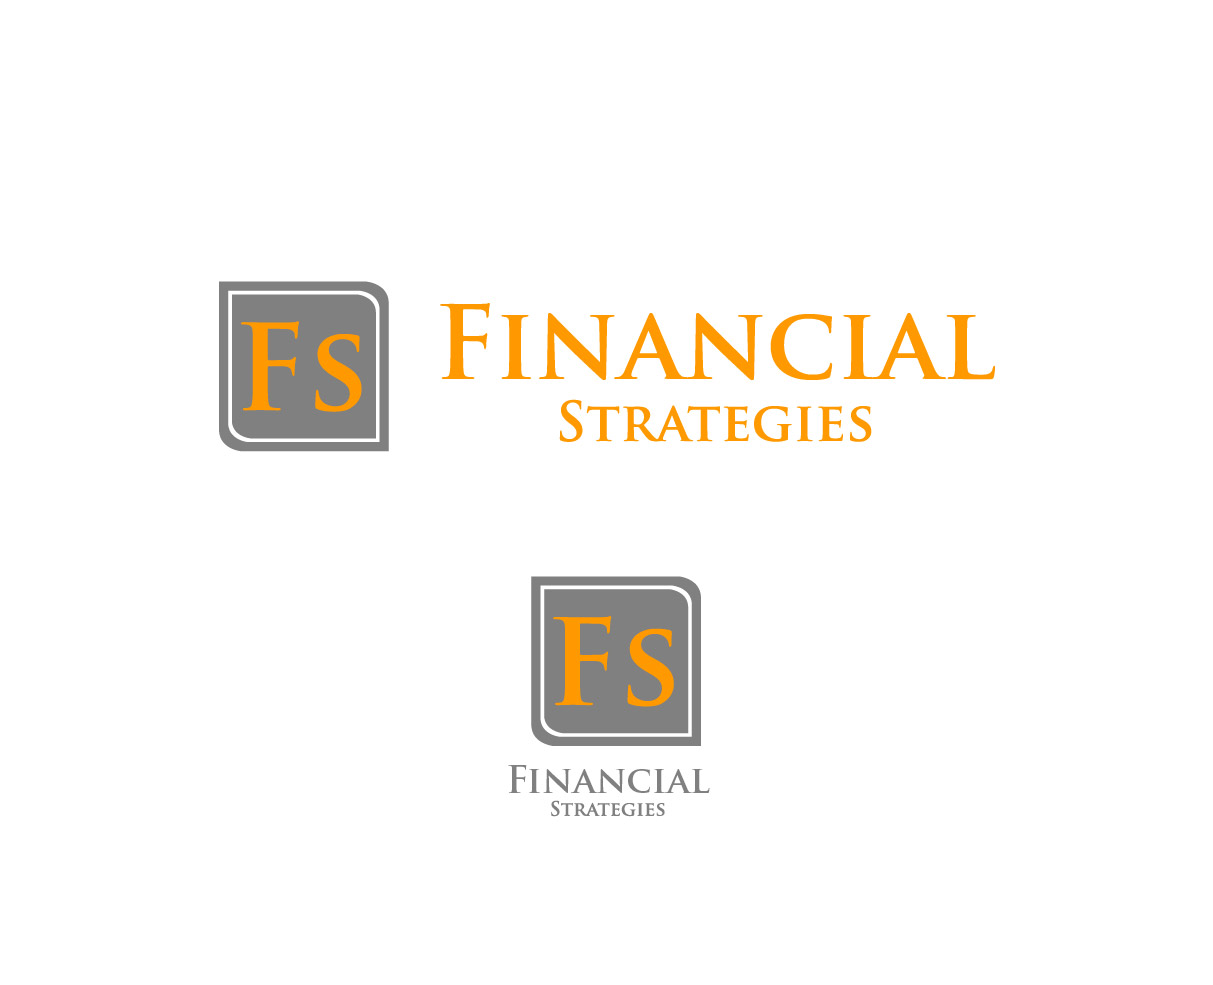 Logo Design by Ika Sari - Entry No. 39 in the Logo Design Contest Logo Design Needed for Exciting New Company FS Financial Strategies.